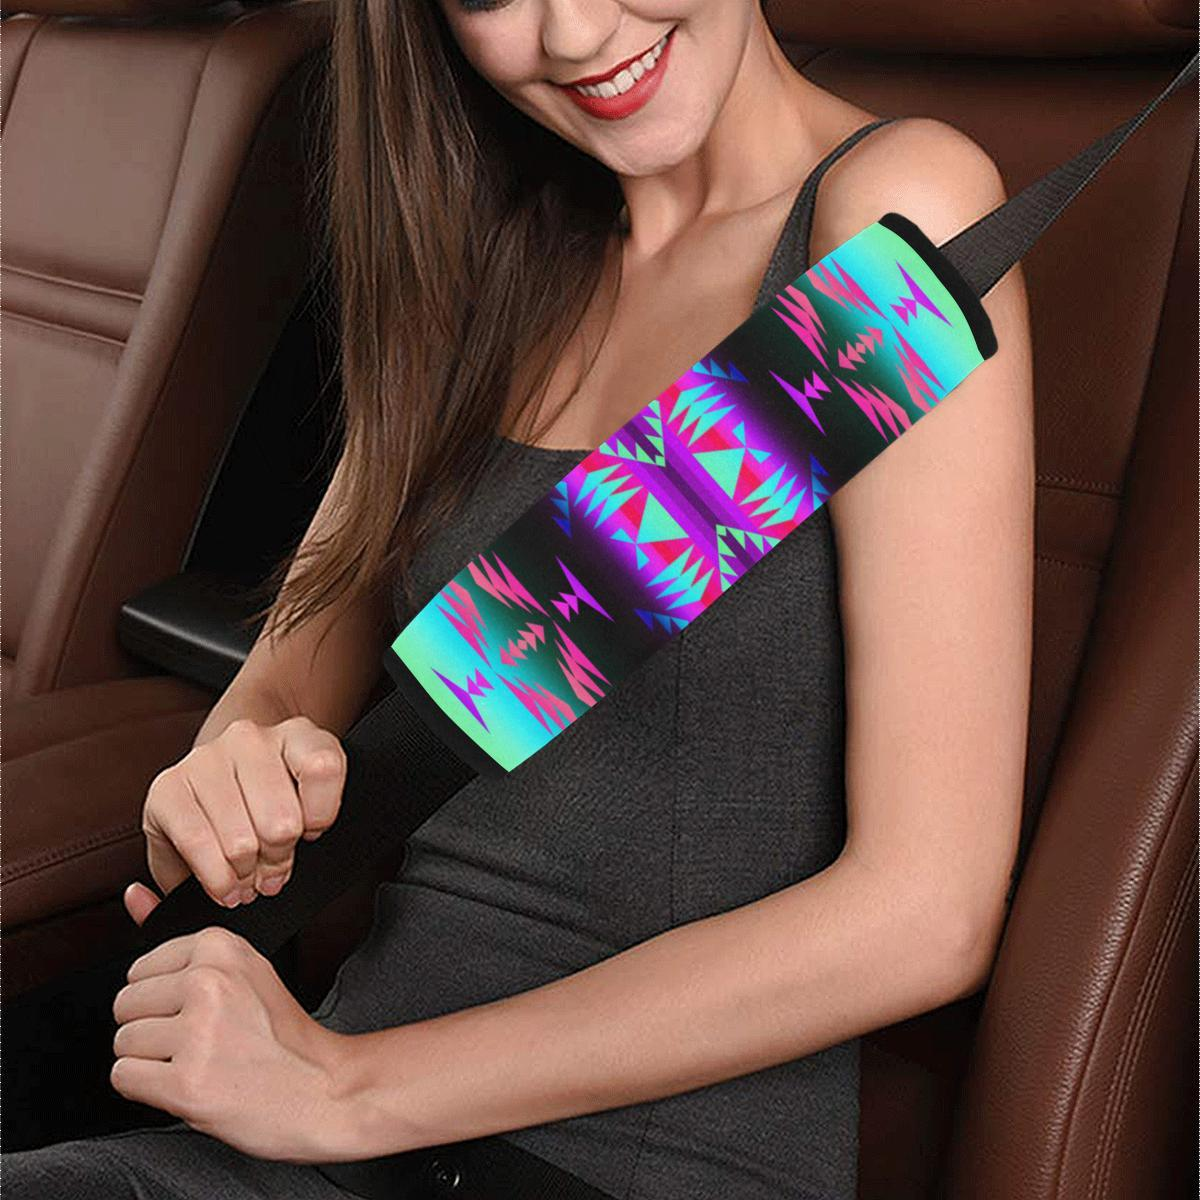 Between the Rocky Mountains Car Seat Belt Cover 7''x12.6'' Car Seat Belt Cover 7''x12.6'' e-joyer